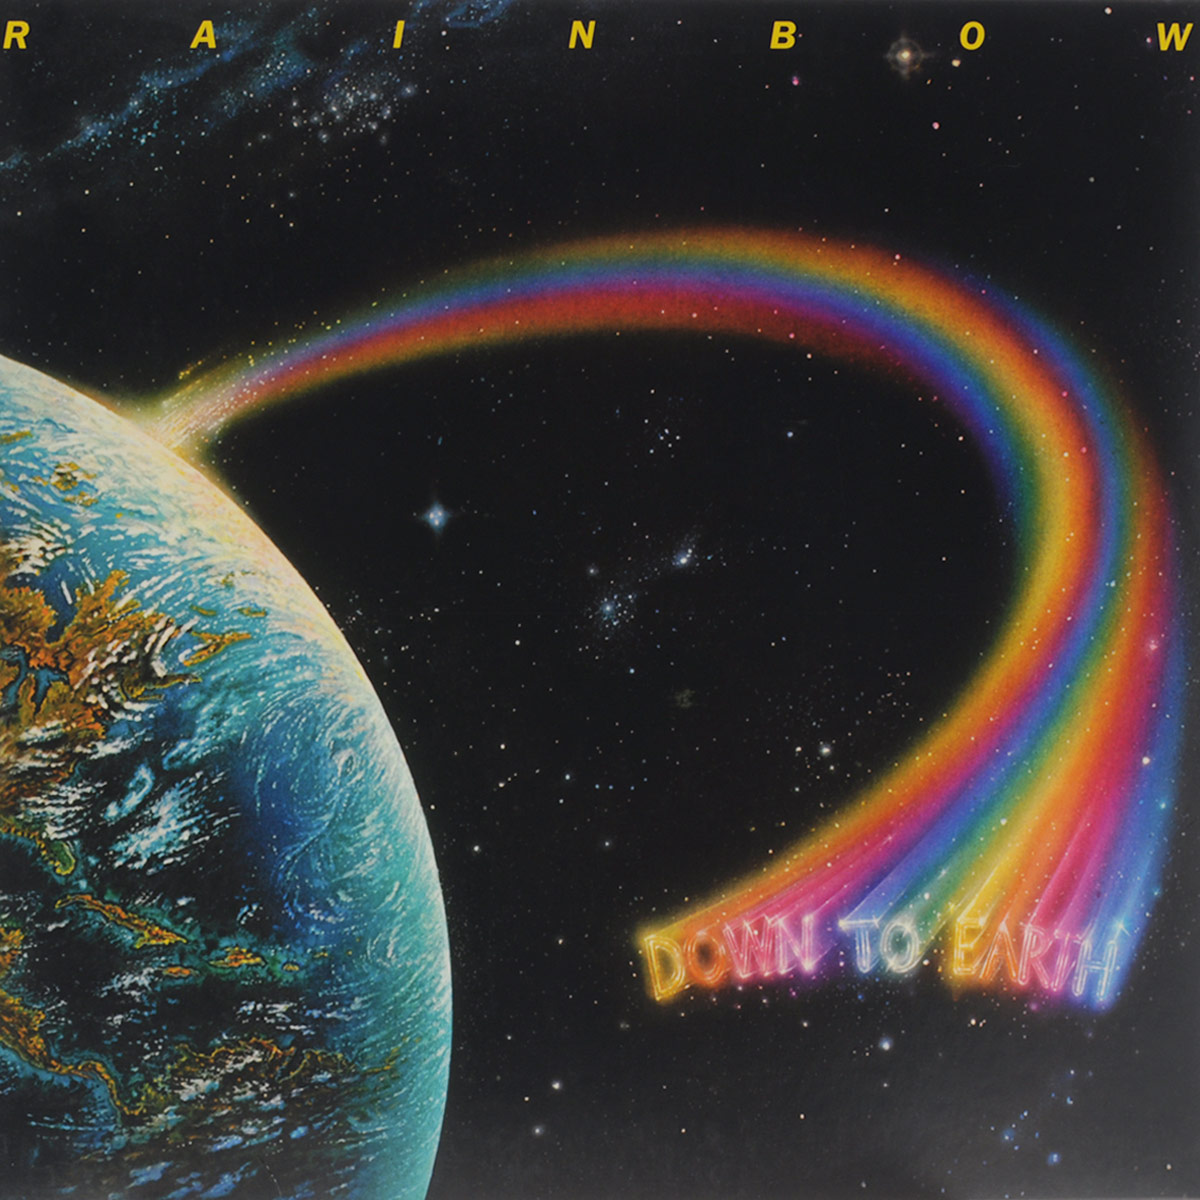 Rainbow Rainbow. Down To Earth (LP) rainbow rainbow down to earth deluxe edition 2 cd